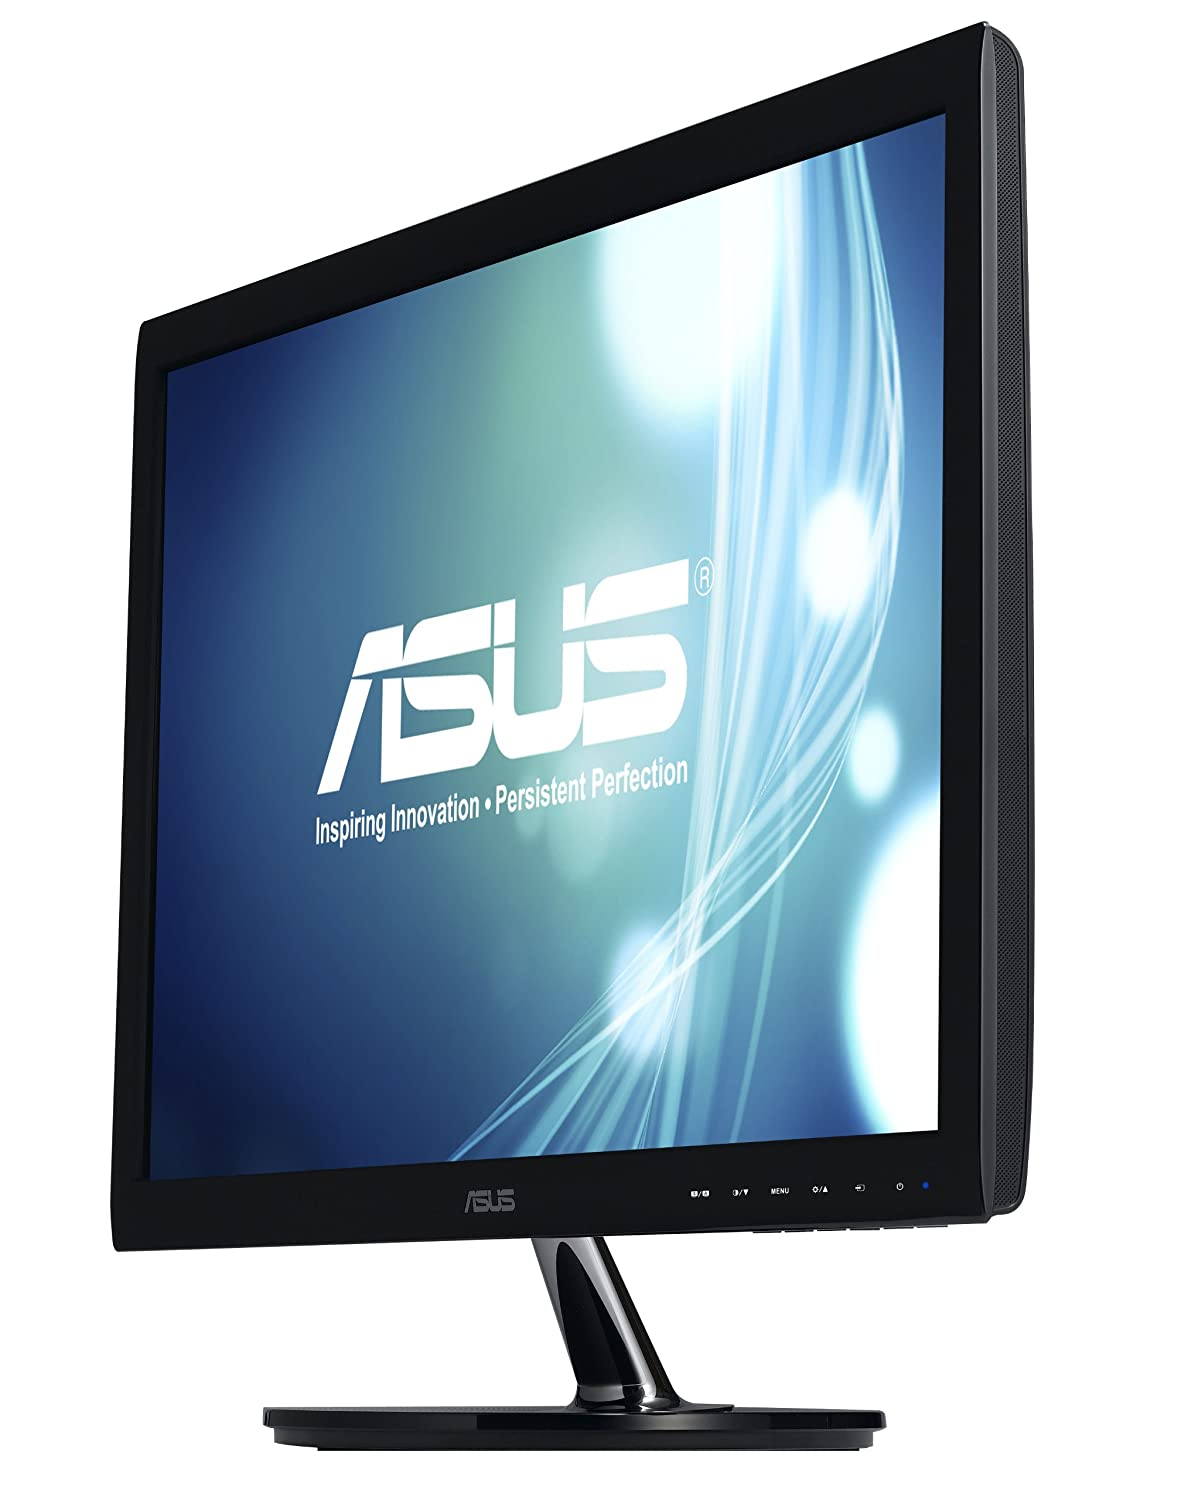 Asus VS238H-P 23-Inch Full-HD LED-Lit LCD Monitor (Price after rebate:	$119.99)